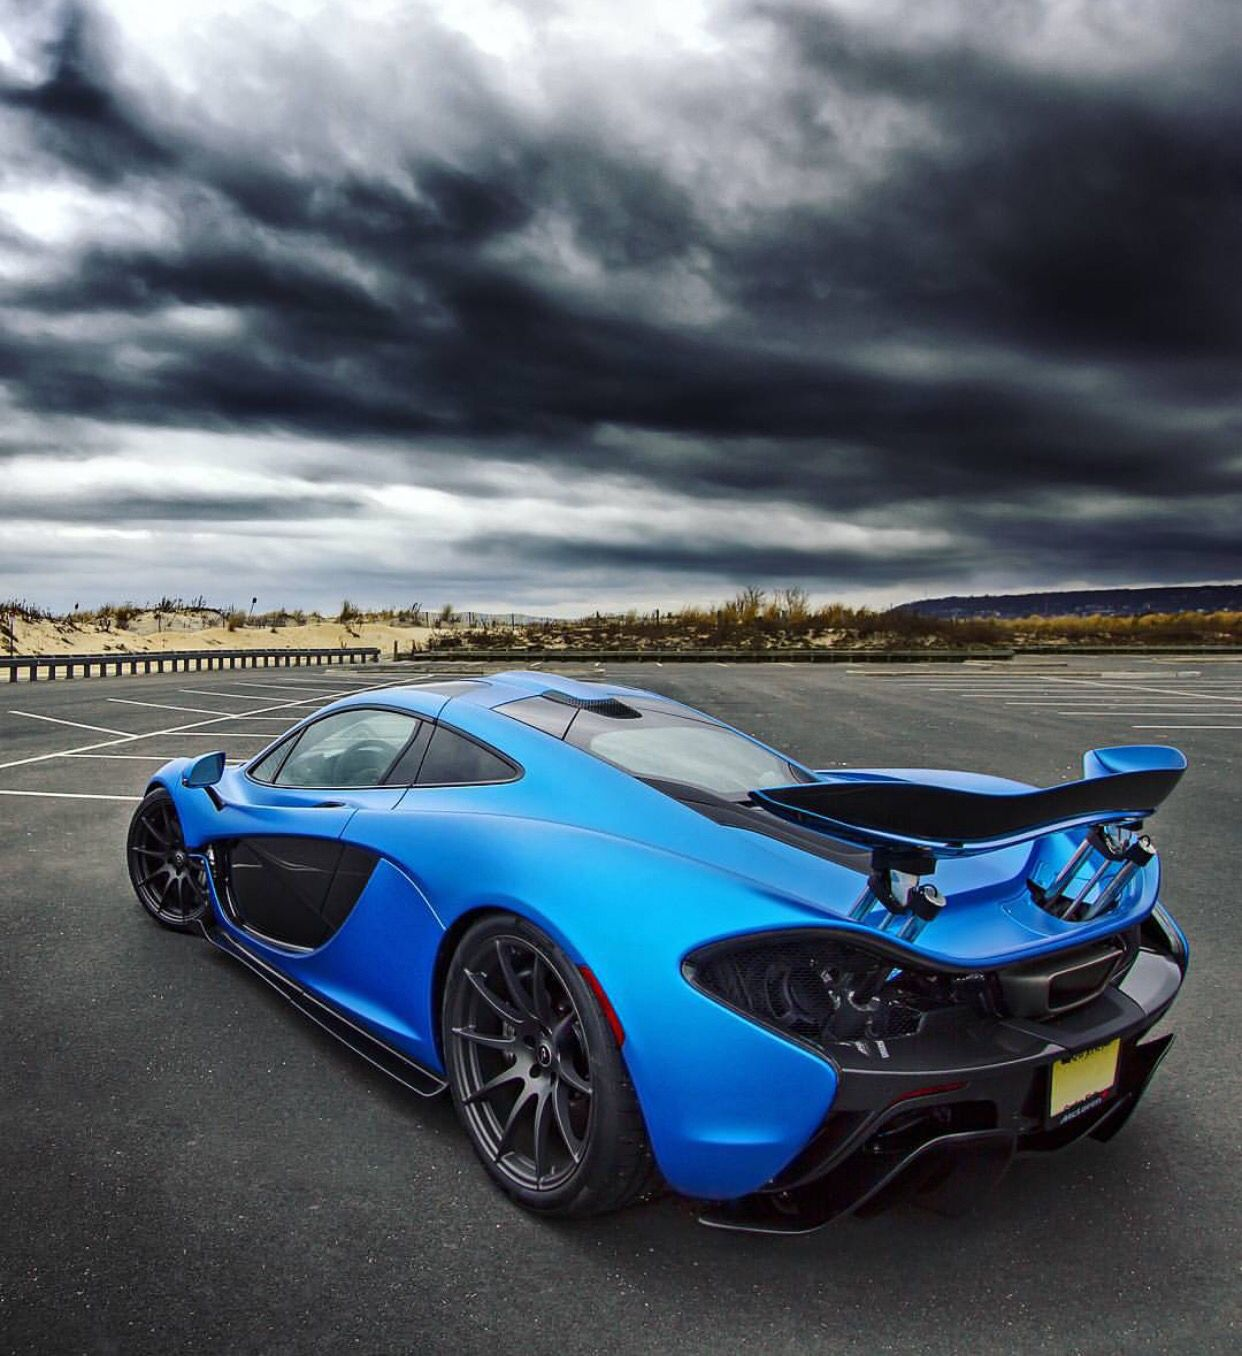 McLaren P1 painted in Satin Cerulean Blue w/ exposed Carbon Fiber Photo taken by: @drivingforceclub on Instagram (@jdcohenmd on Instagram is the owner of the car)